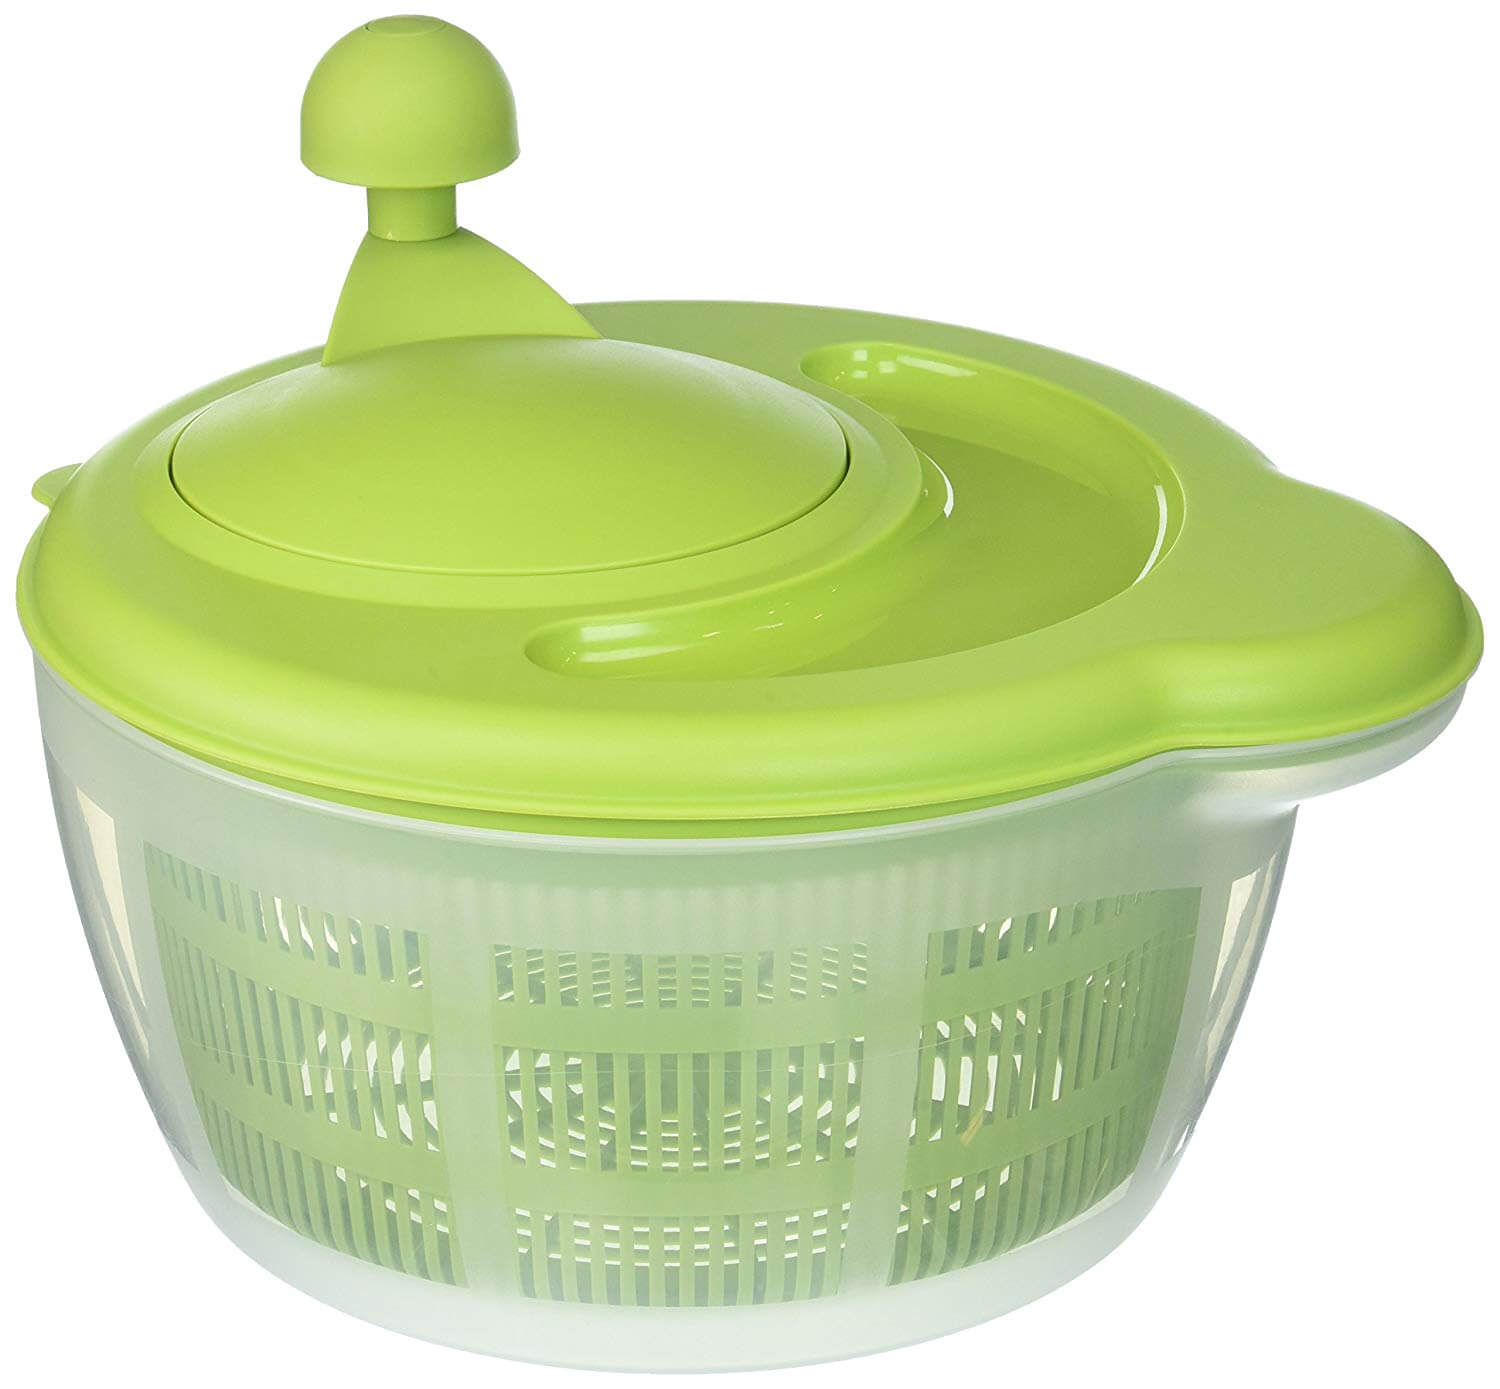 Westmark German Vegetable and Salad Spinner with Pouring Spout